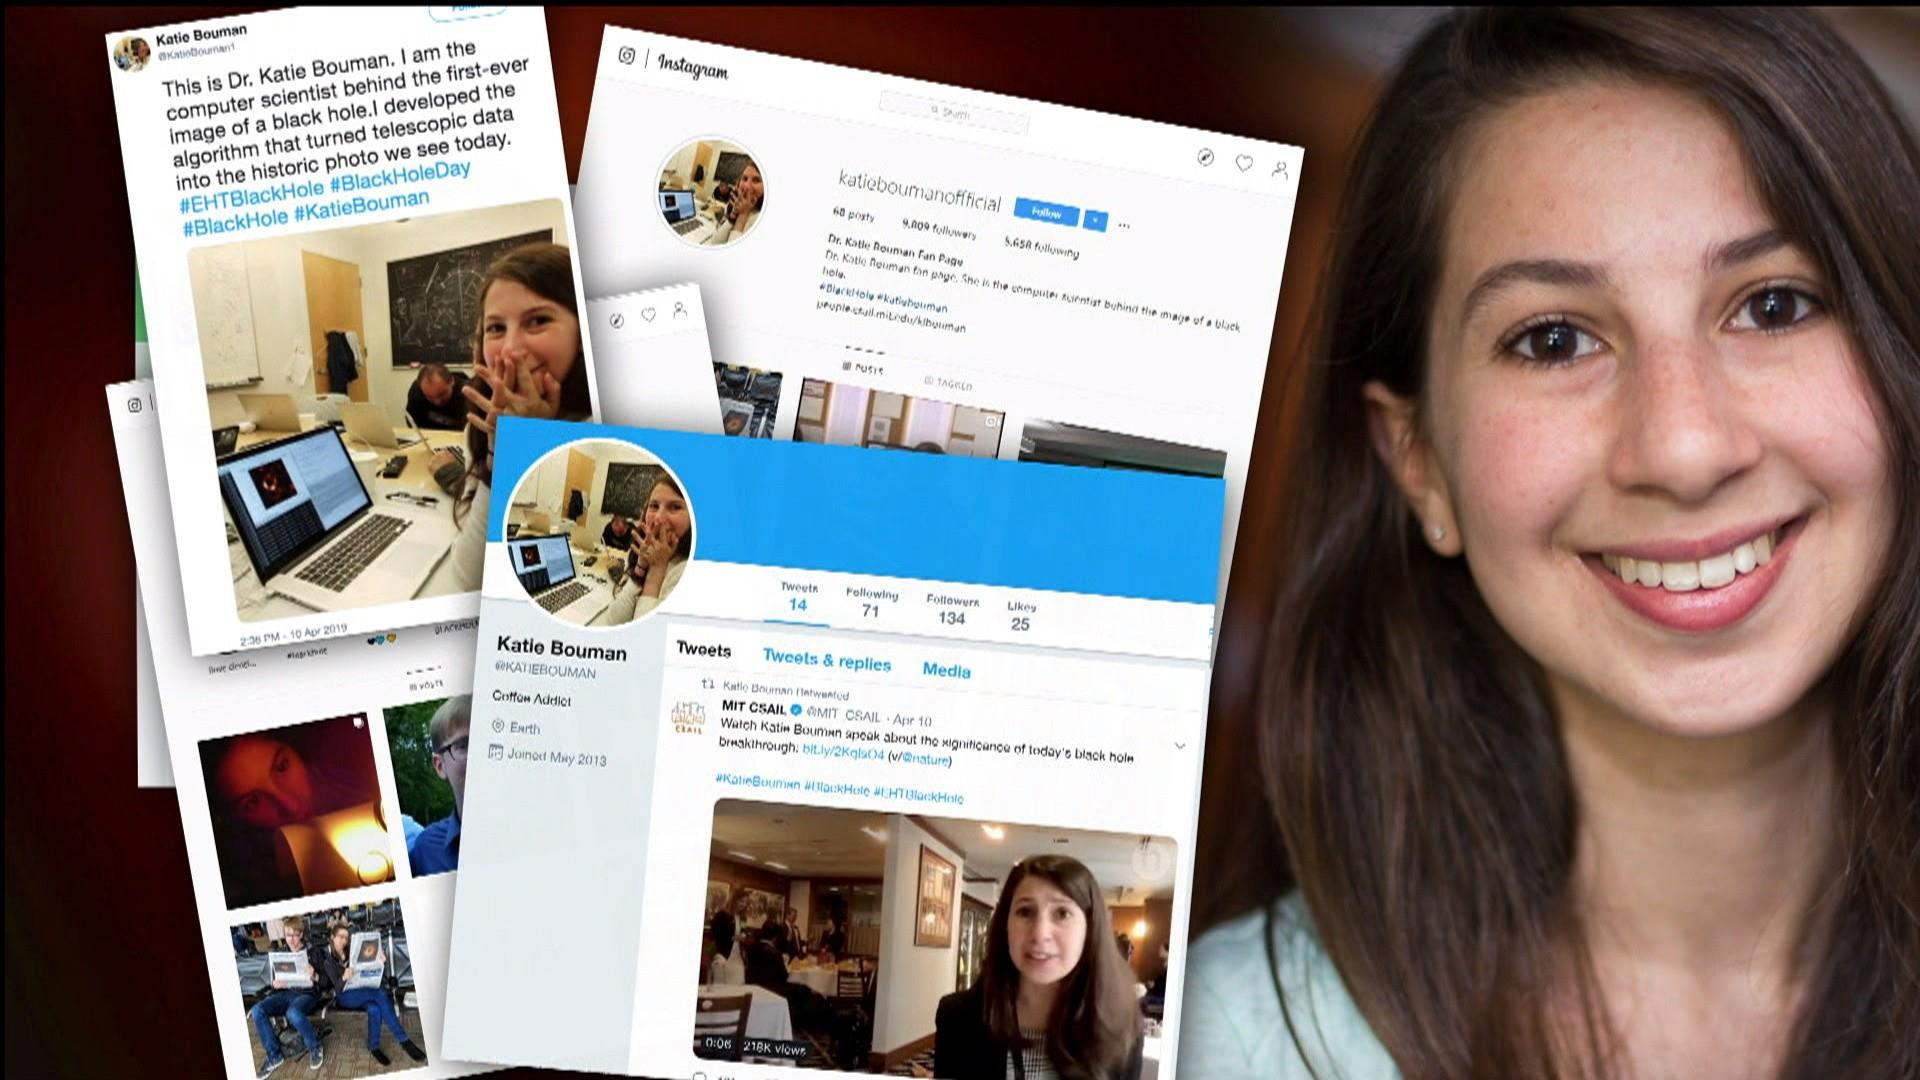 The first picture of a black hole made Katie Bouman an overnight celebrity. Then internet trolls descended.